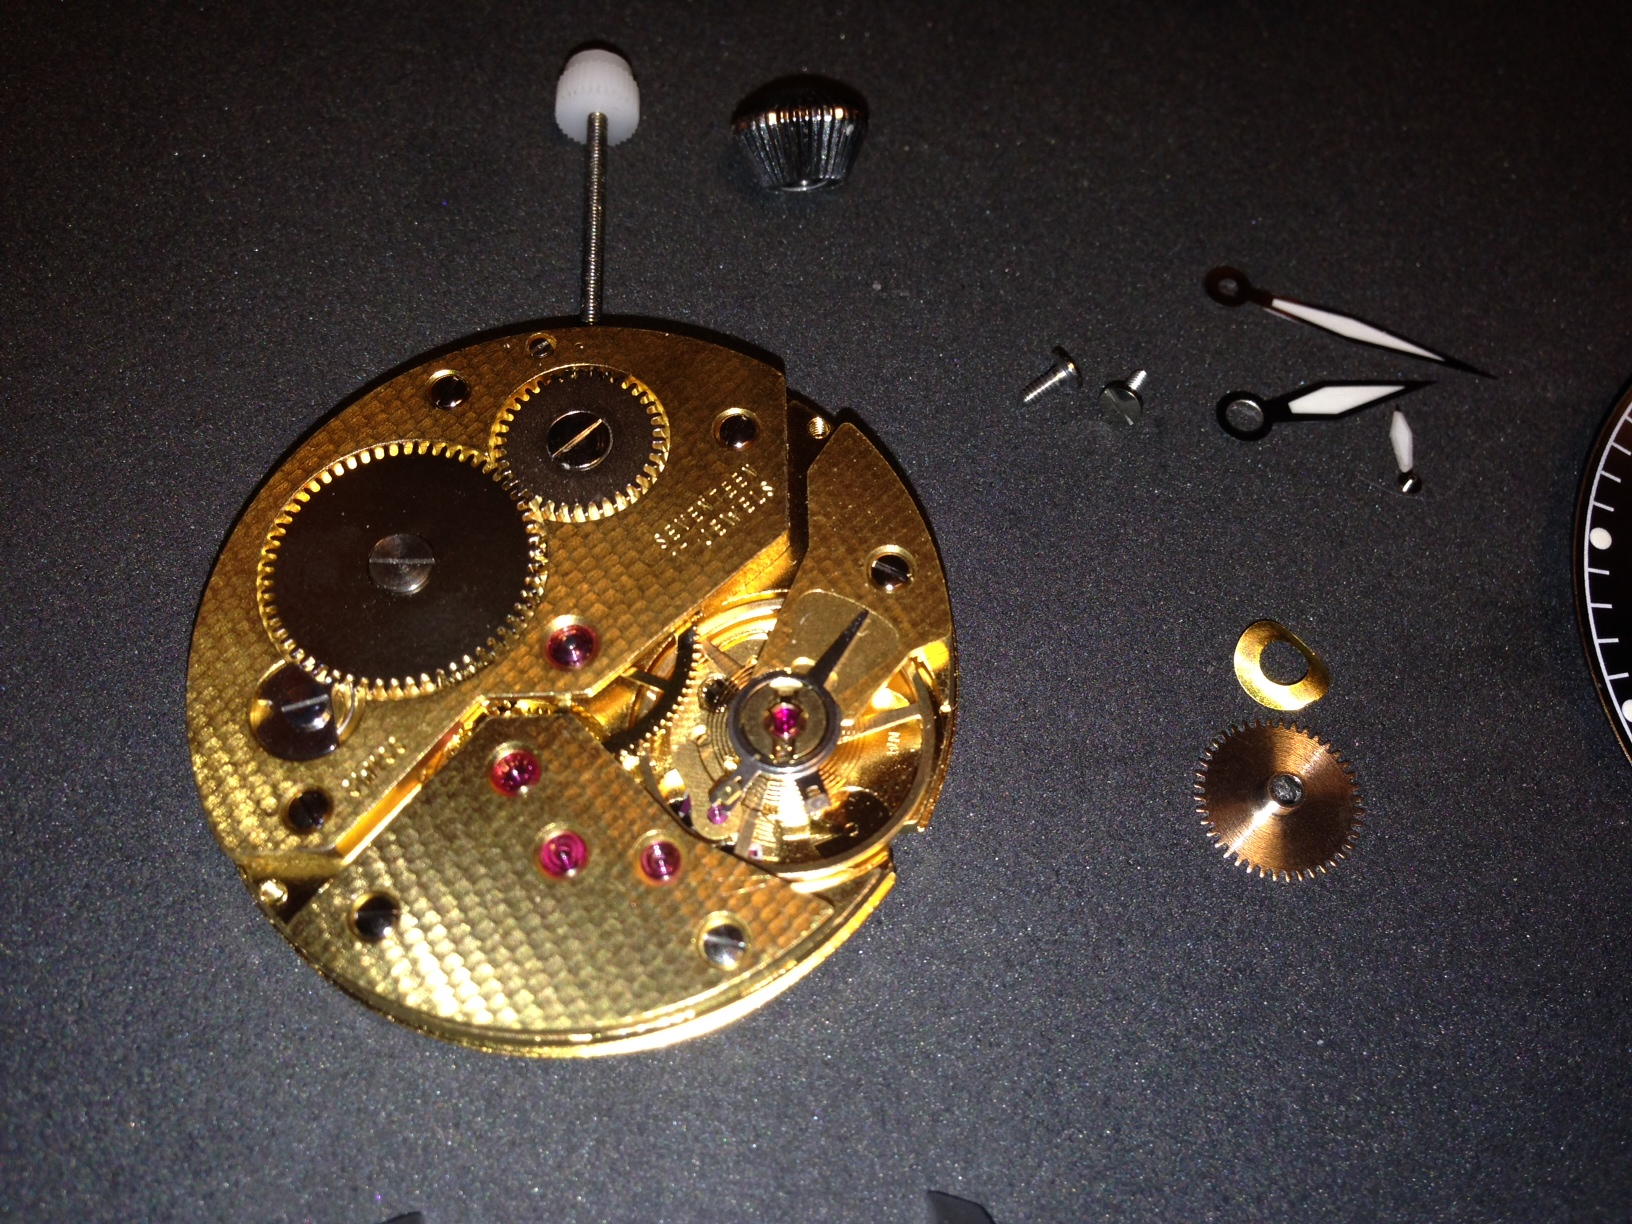 How to build your own mechanical watch - ETA 6497 Movement